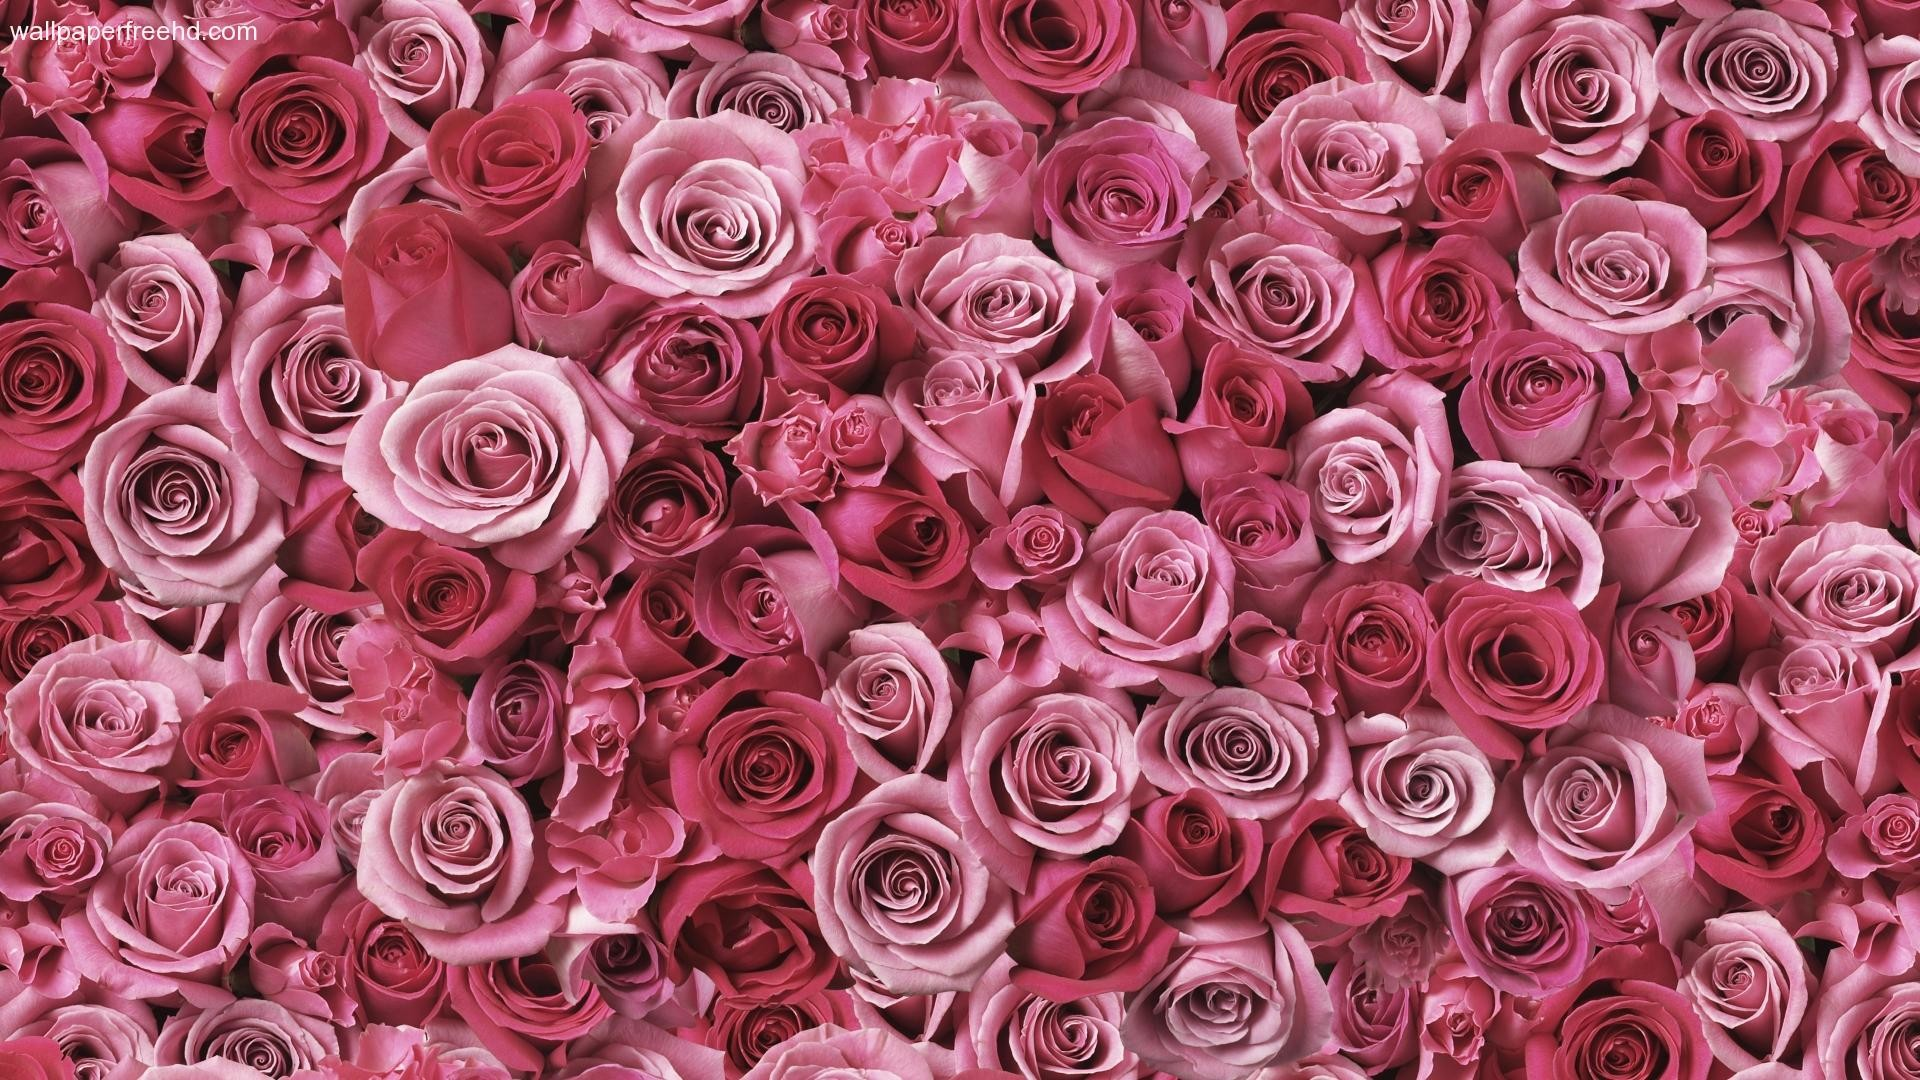 1084412 full size rose gold wallpapers 1920x1080 for mobile